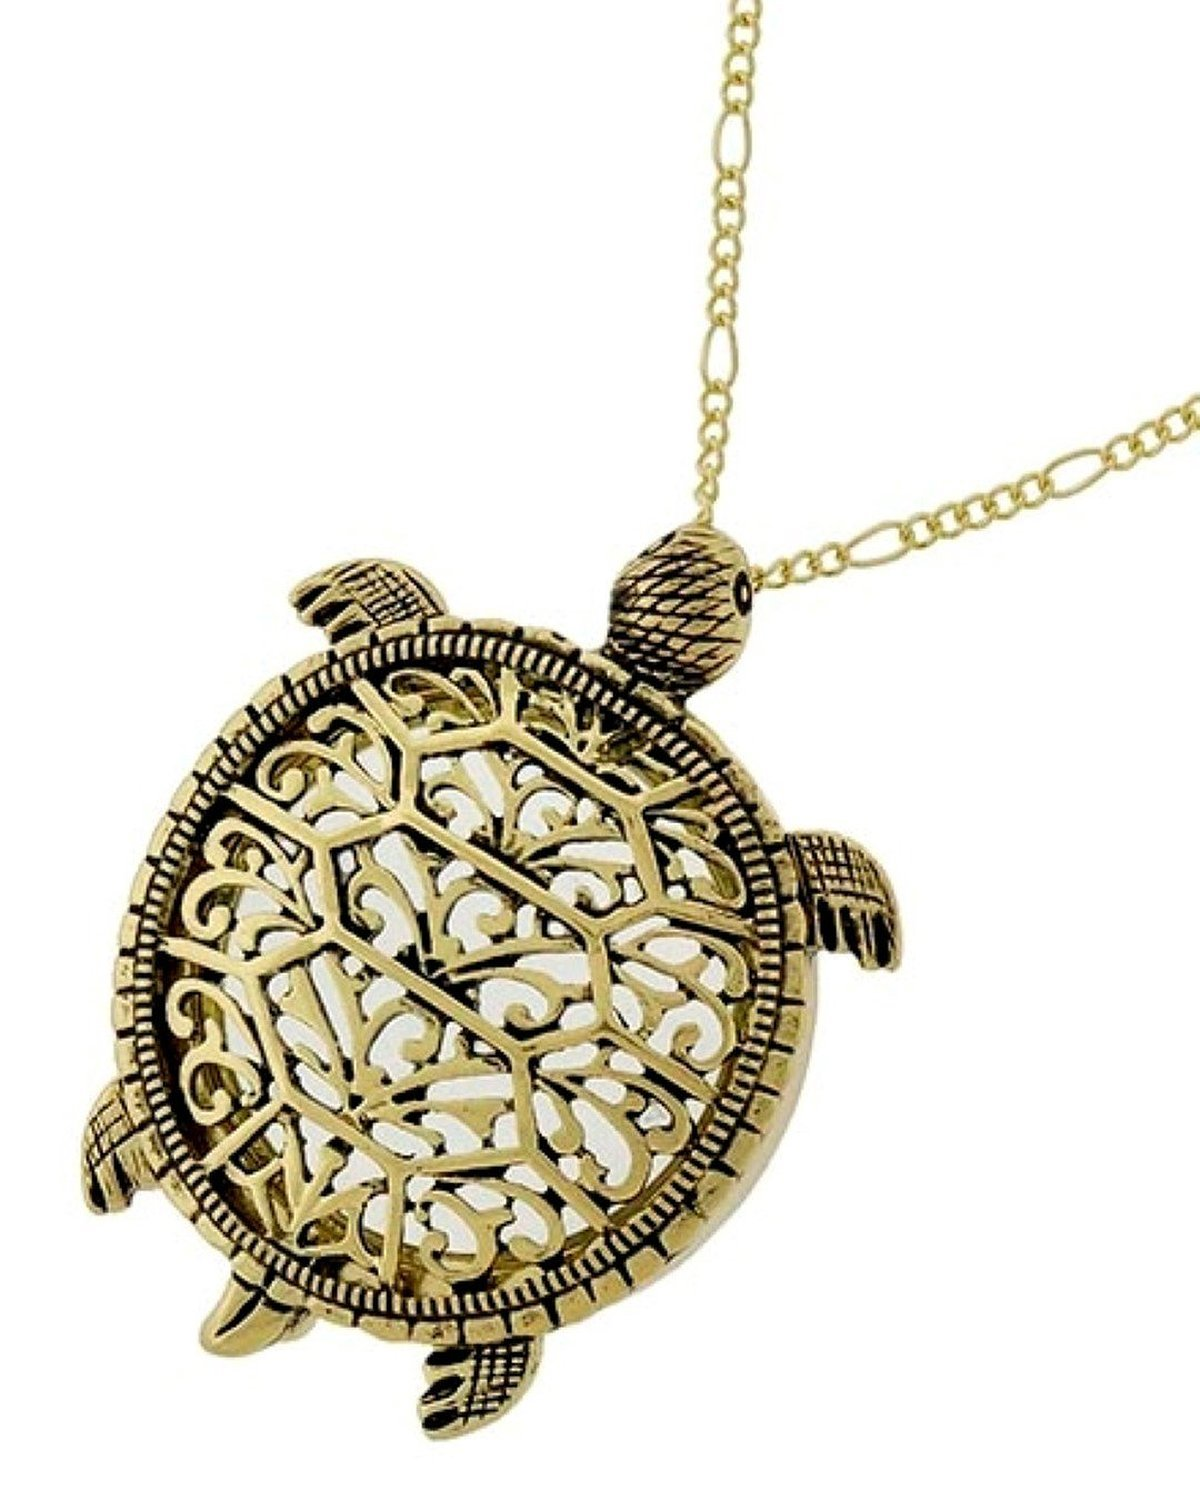 Sea Turtle Magnifier Magnifying Glass Sliding Top Magnet Pendant Necklace, 30'' (Gold Tone)